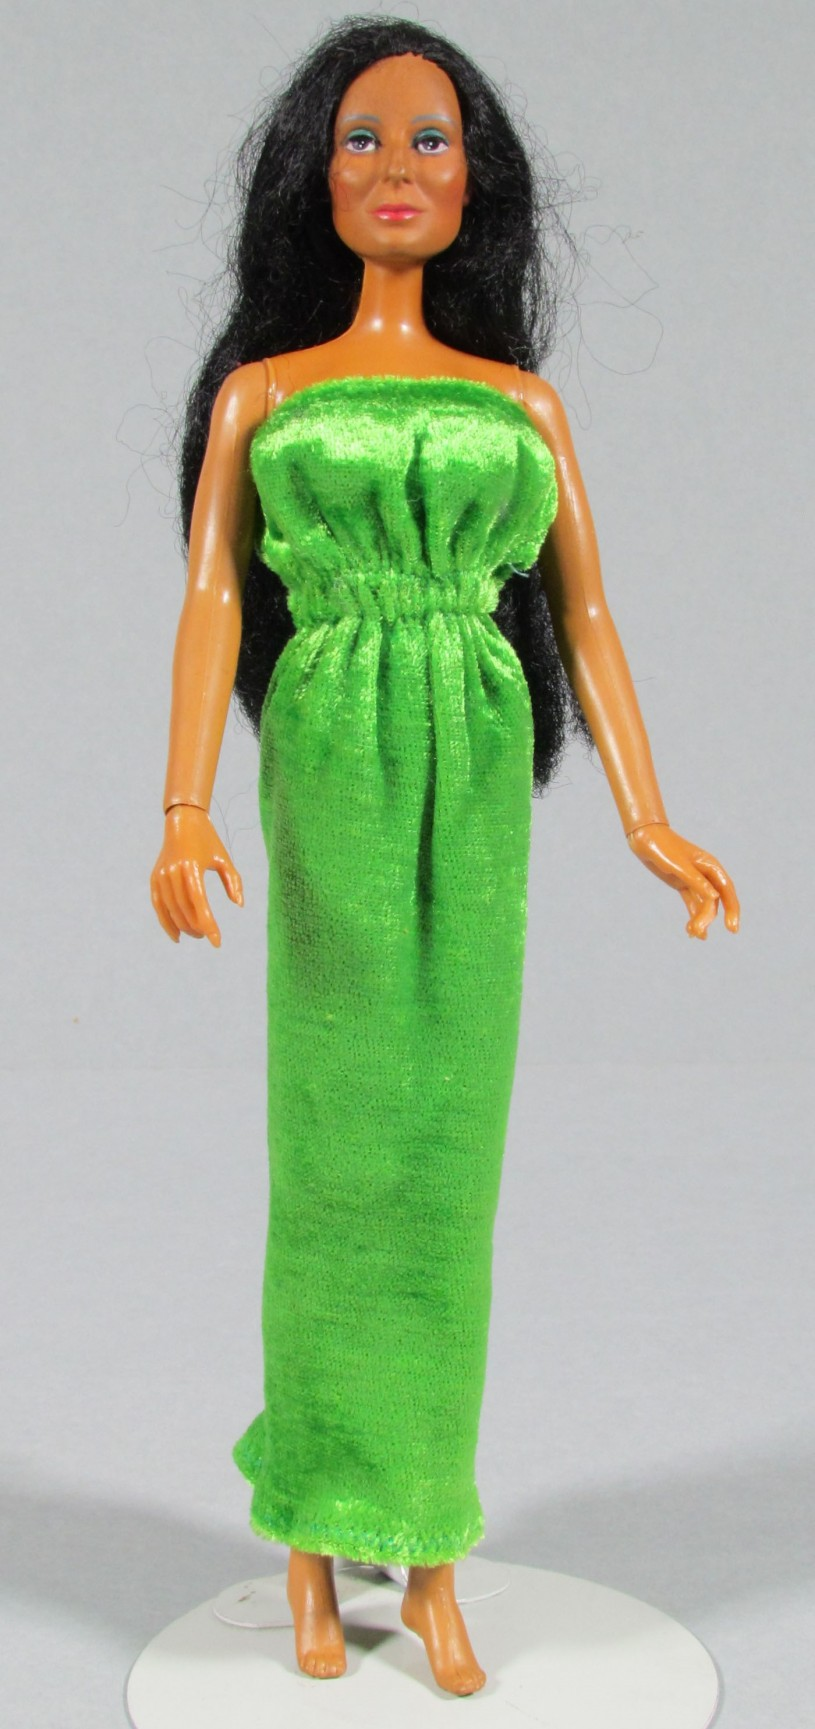 Cher doll in green dress